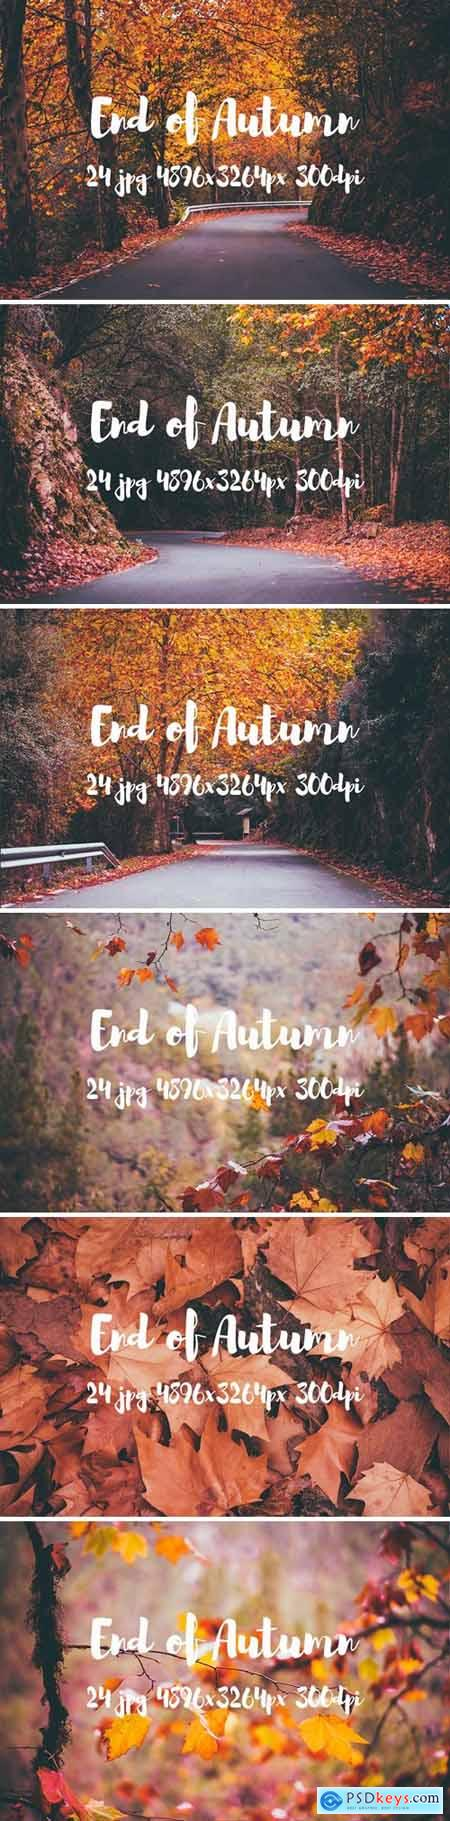 End of Autumn photo pack 207027